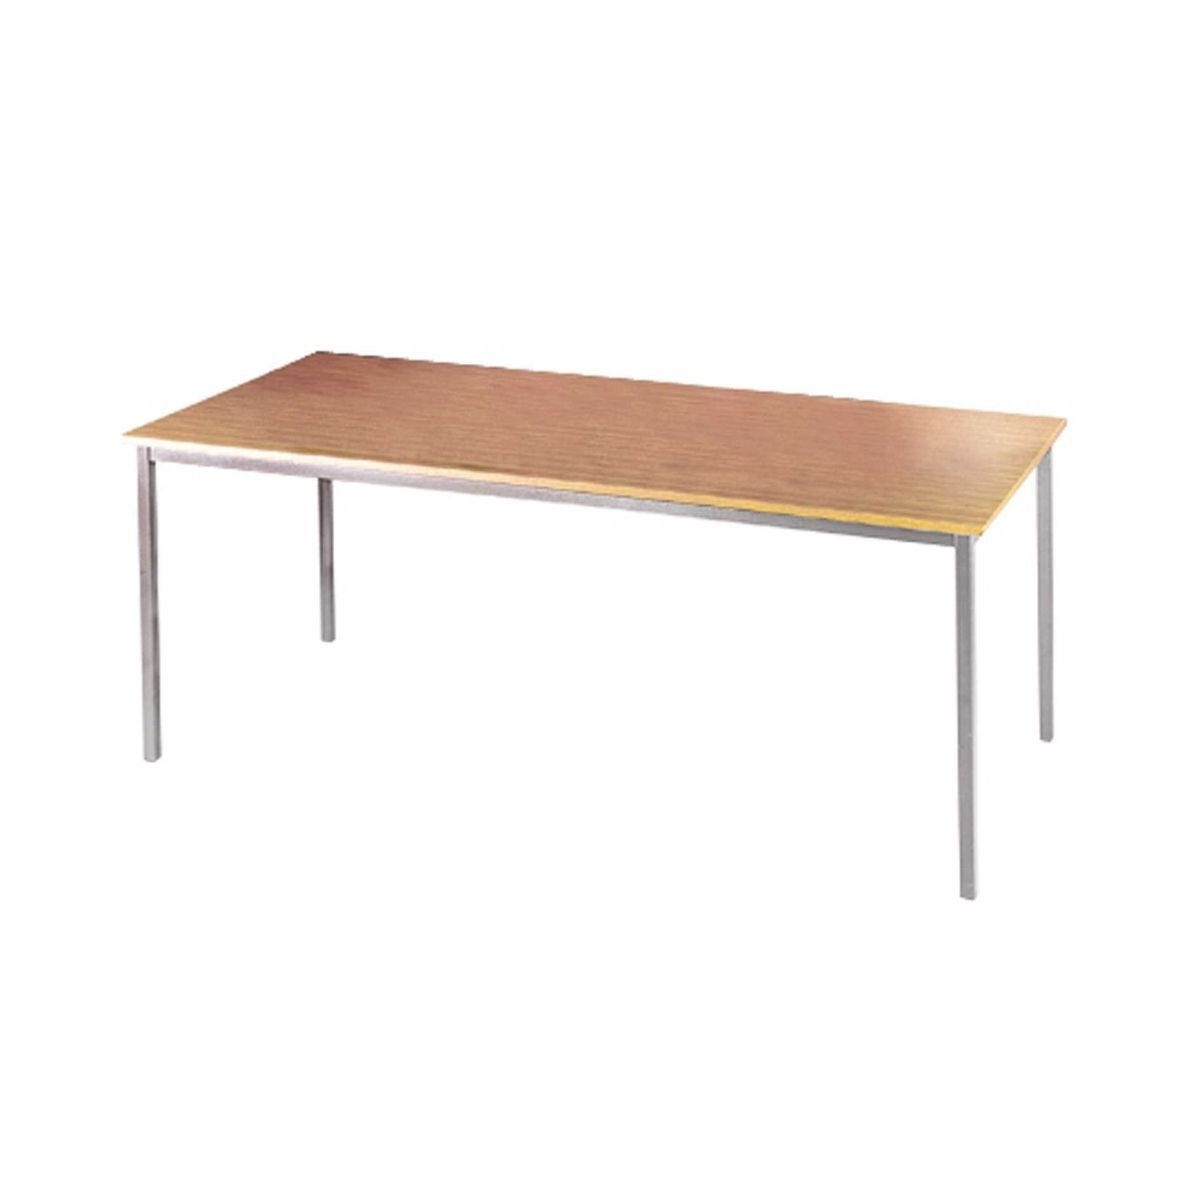 Flexi-table Rectangular Table with Silver Frame 1400mm FLXS14 Beech Effect